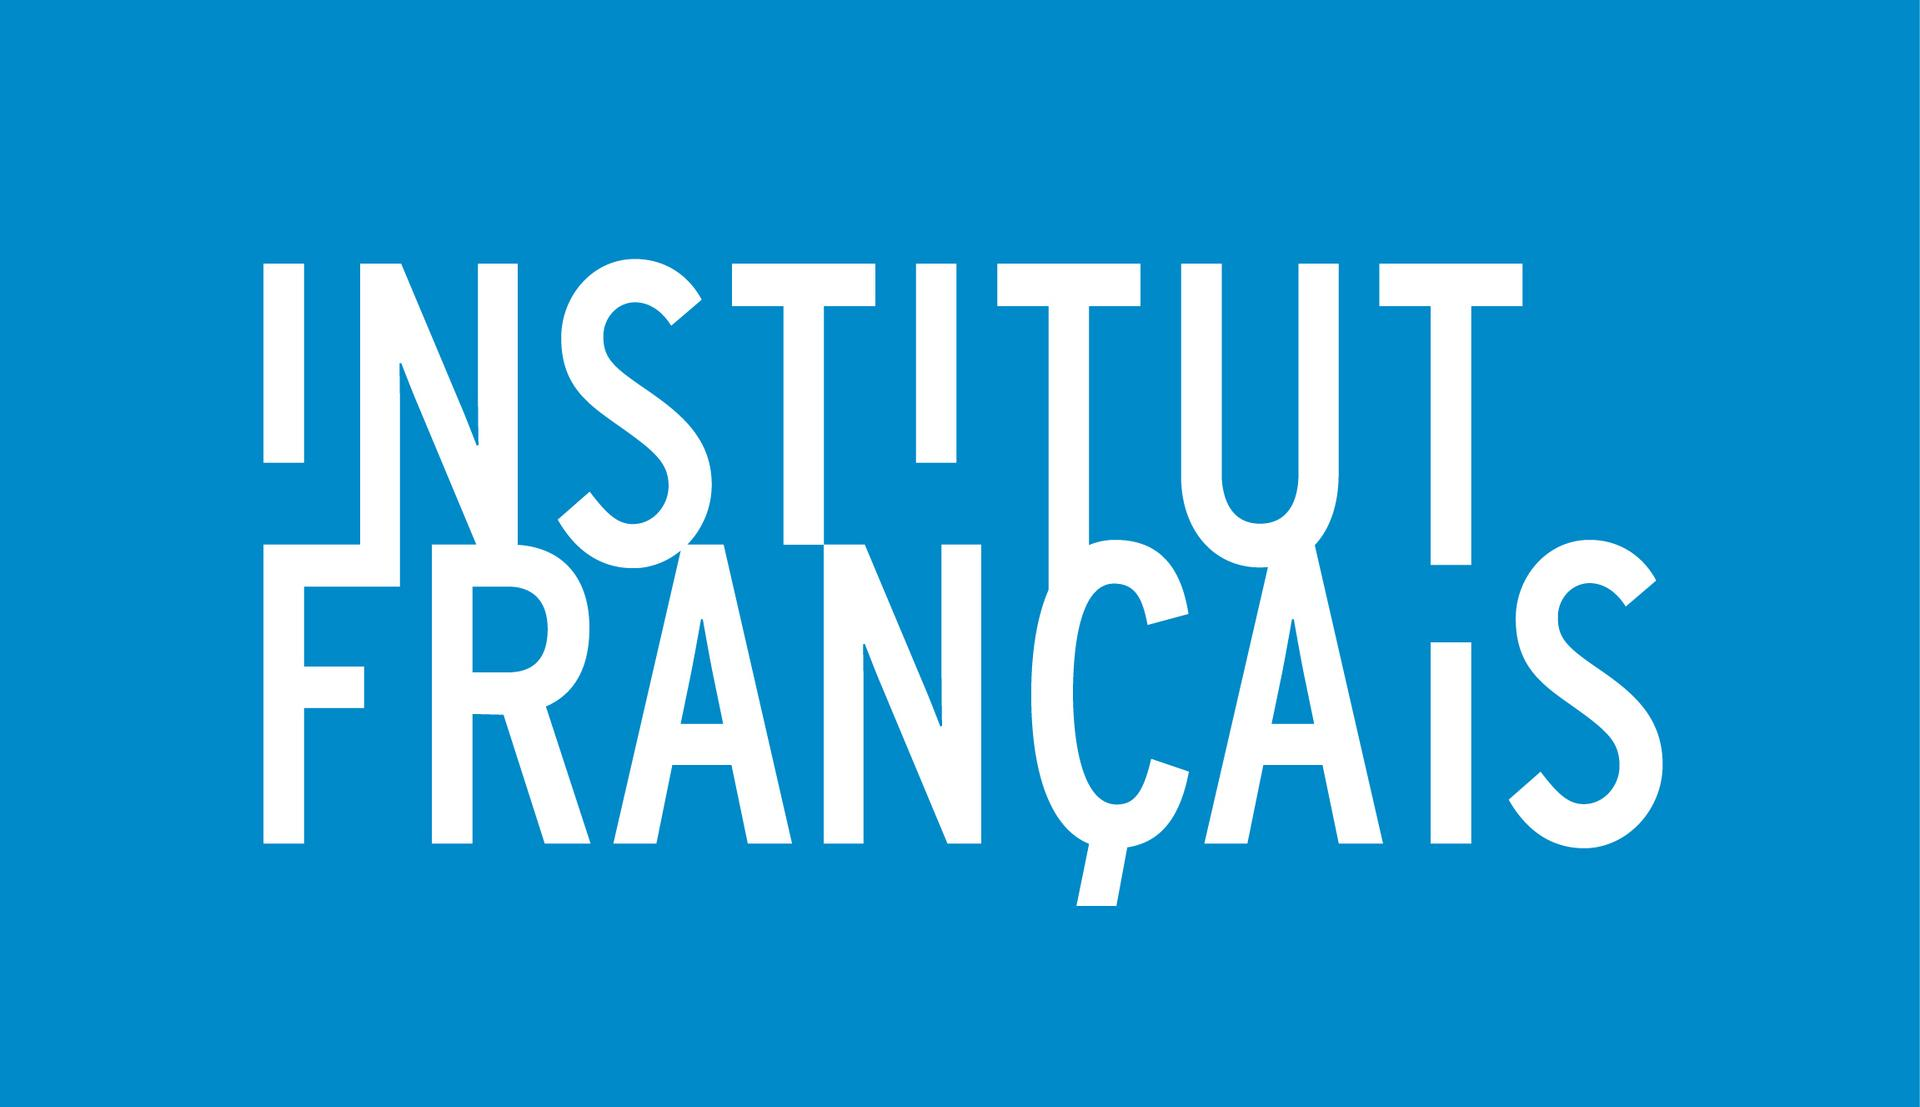 www.institutfrancais.com